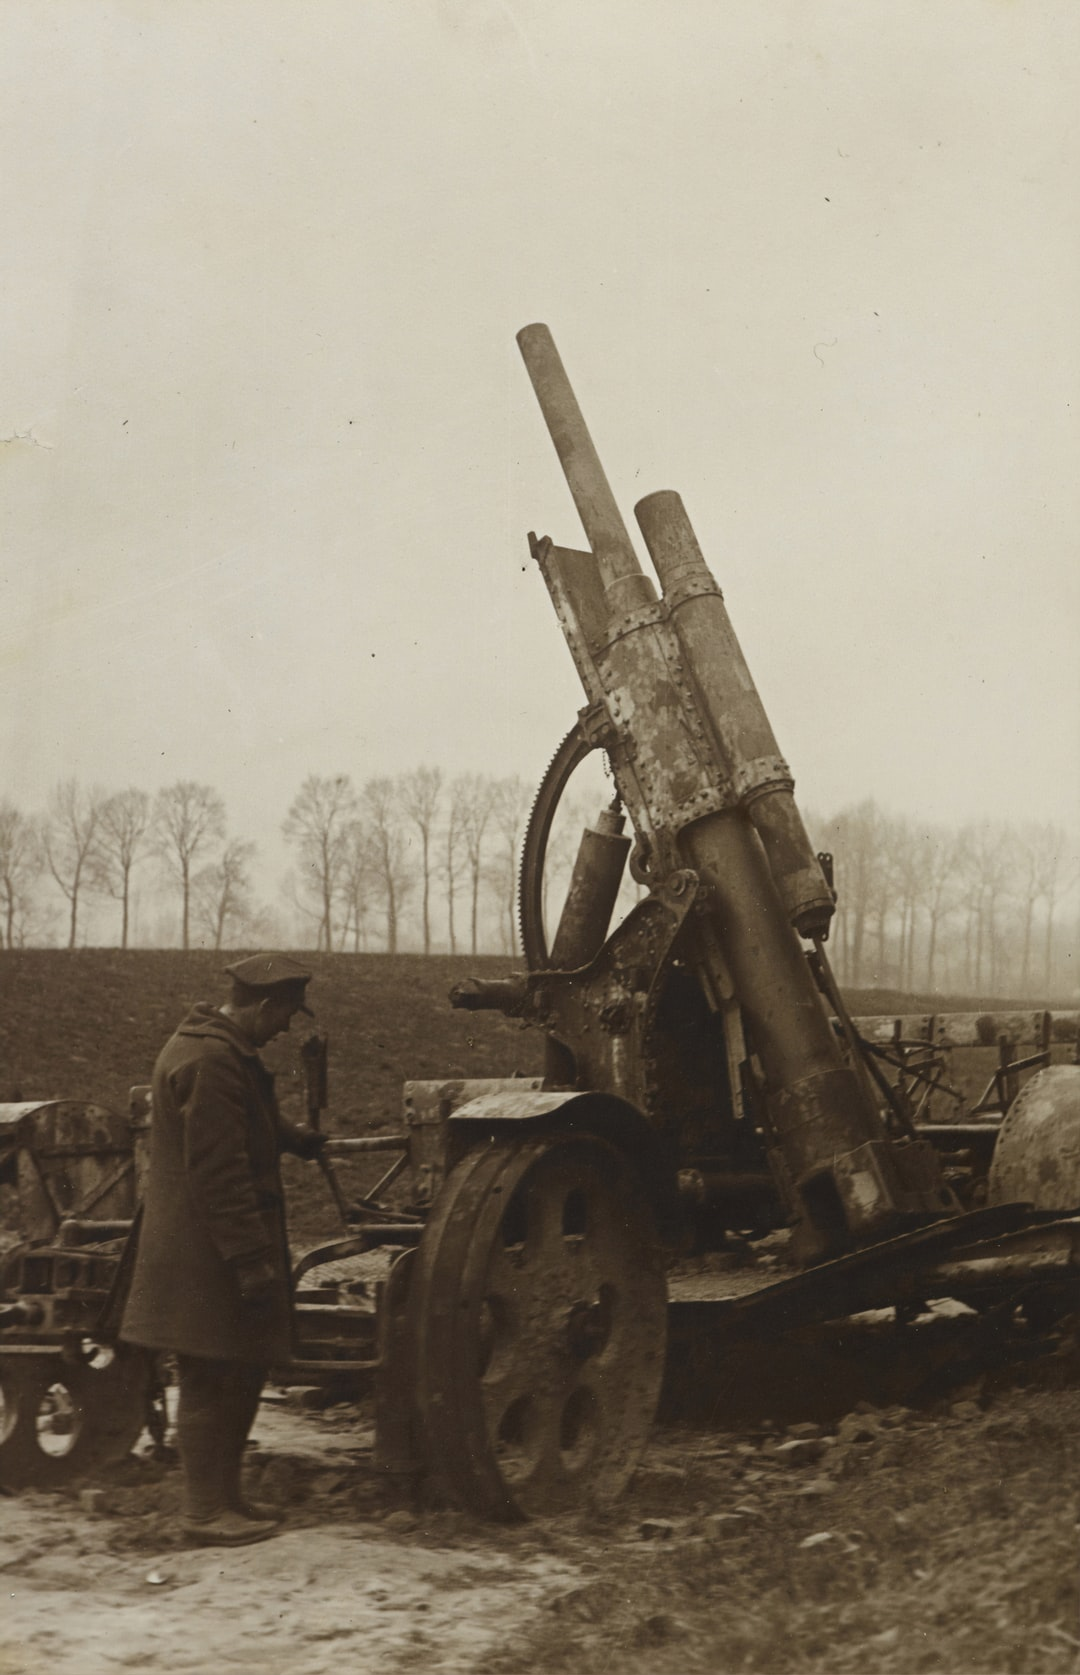 Anti-aircraft gun captured by troops from the defeated Germans. 1915.